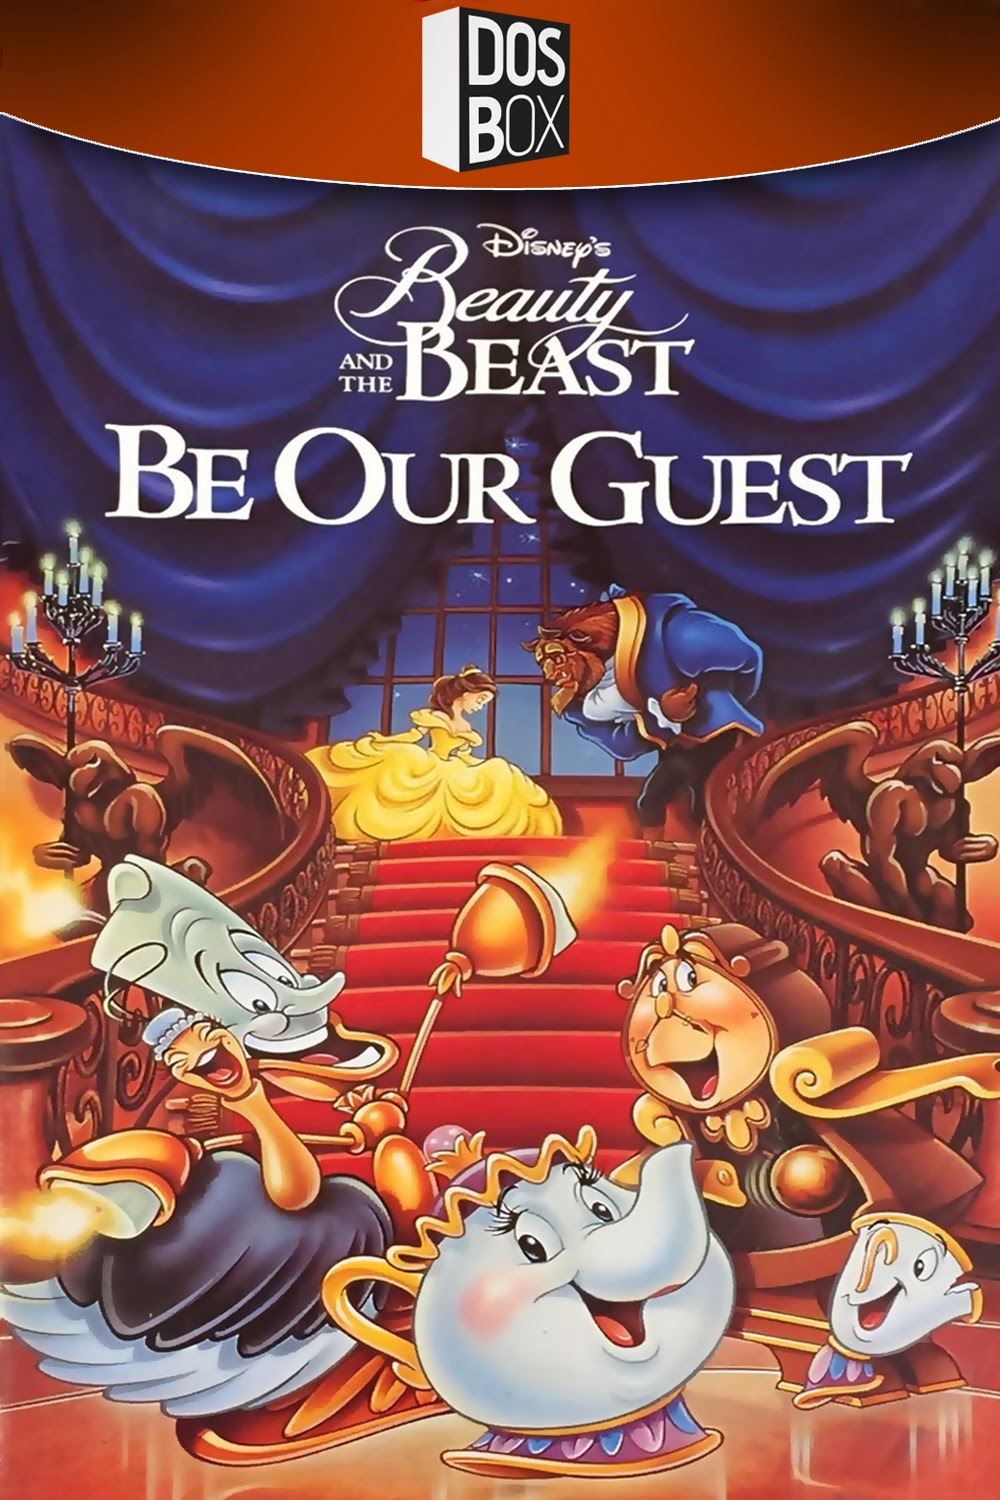 DISNEYS BEAUTY THE BEAST BE OUR GUEST